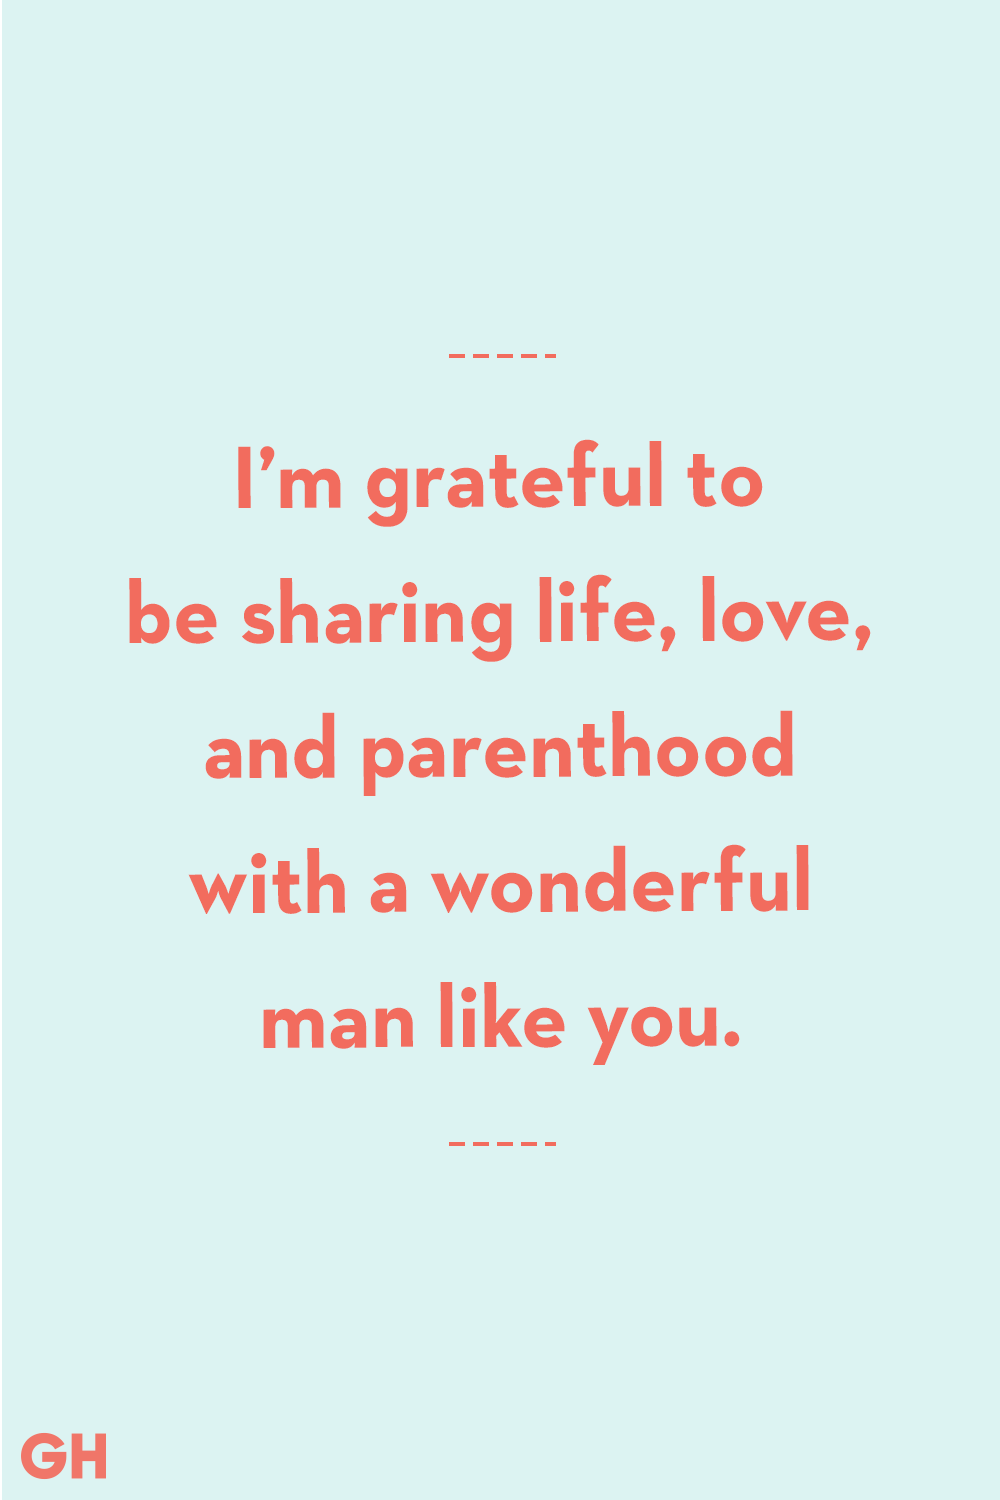 20 Father's Day Quotes From Wife - Quotes From Wife to Husband for Father's Day day quotes 20 Meaningful Quotes to Honor Your Husband on Father's Day